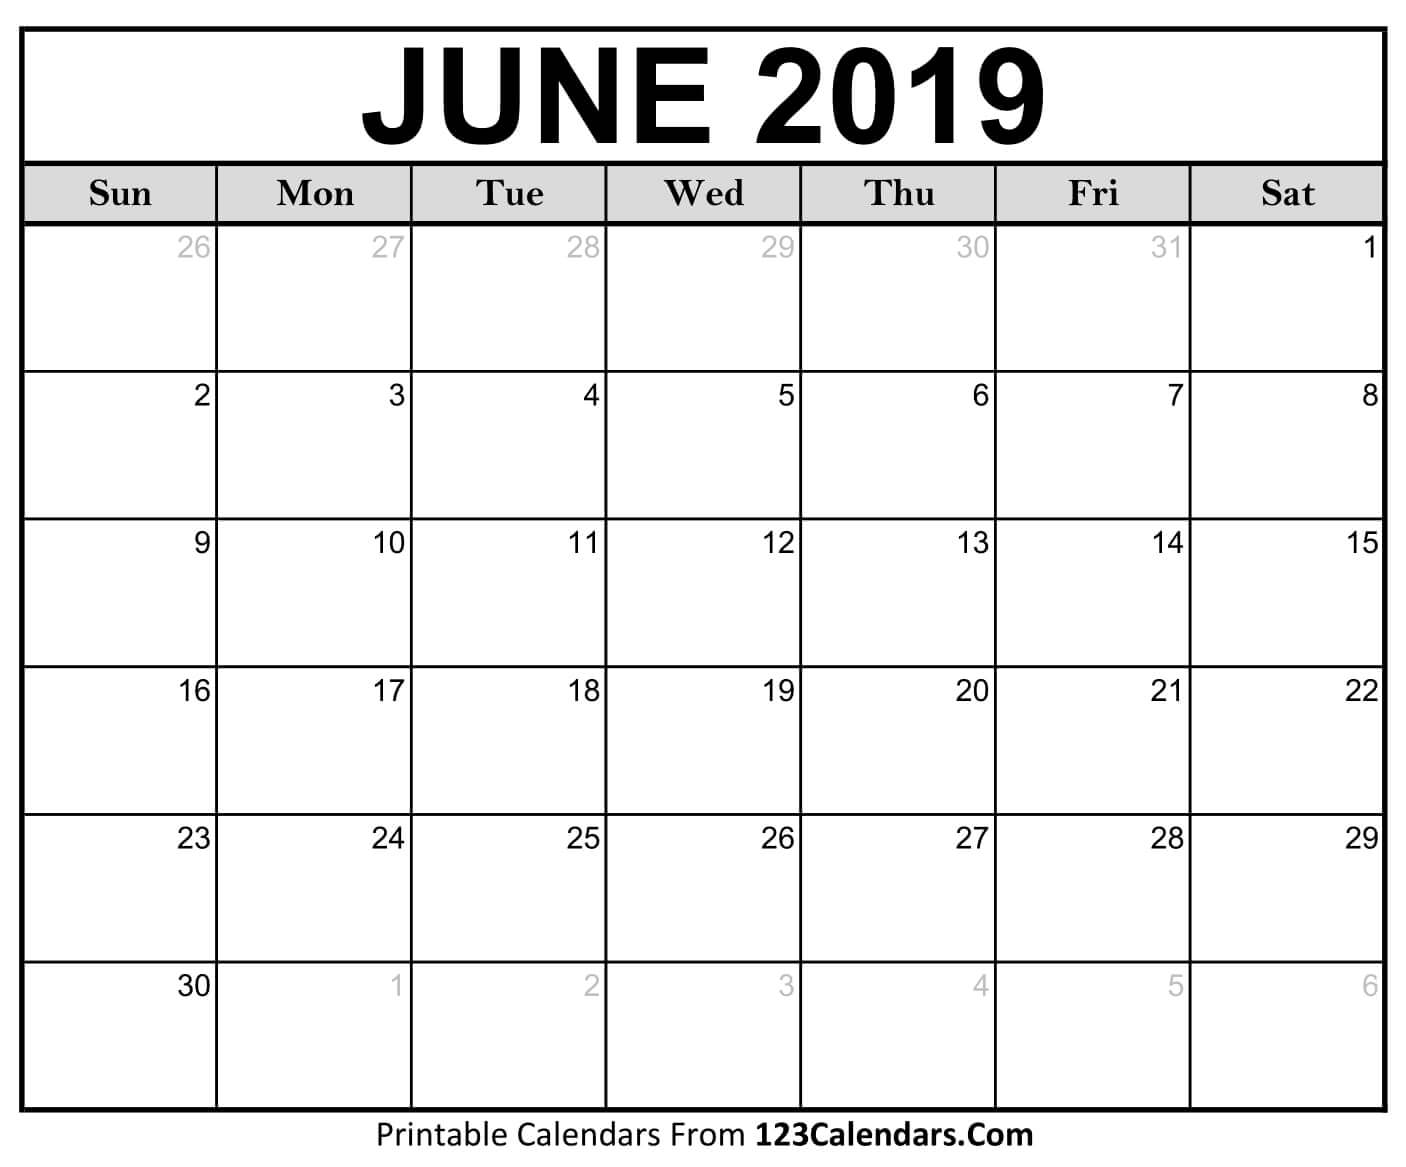 Calendar Of June.Decorative June 2019 Calendar Pdf Page Excel Word Floral Wallpaper